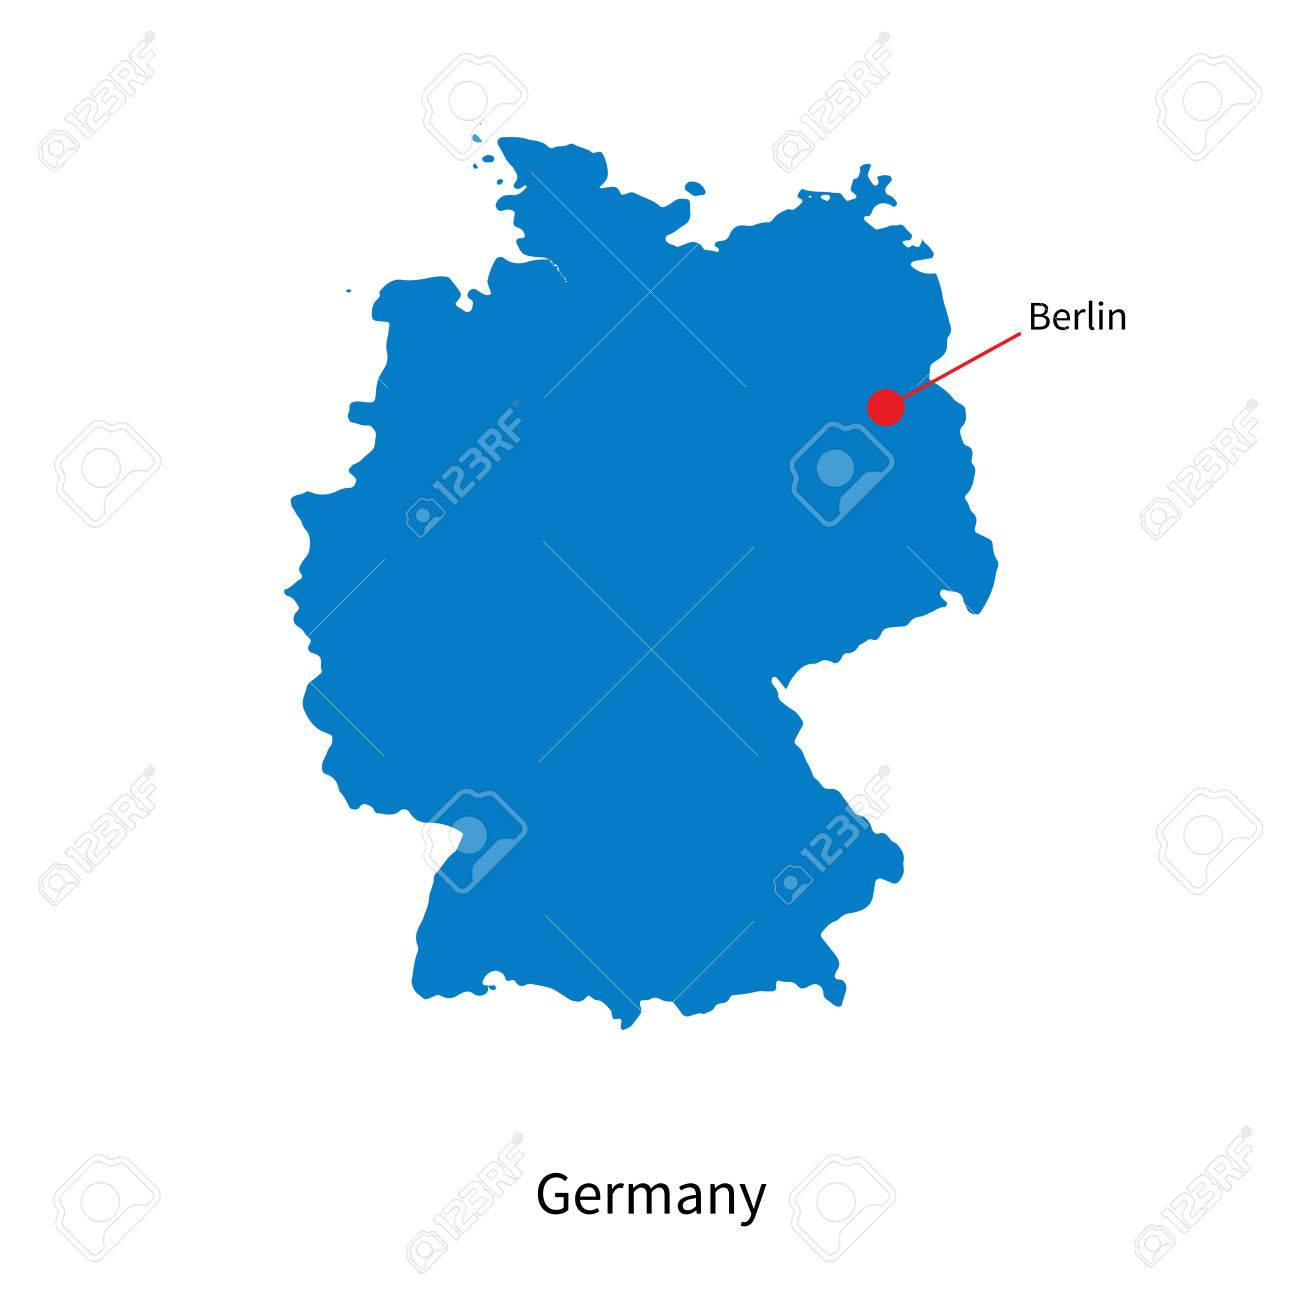 Detailed Map Of Germany And Capital City Berlin Royalty Free